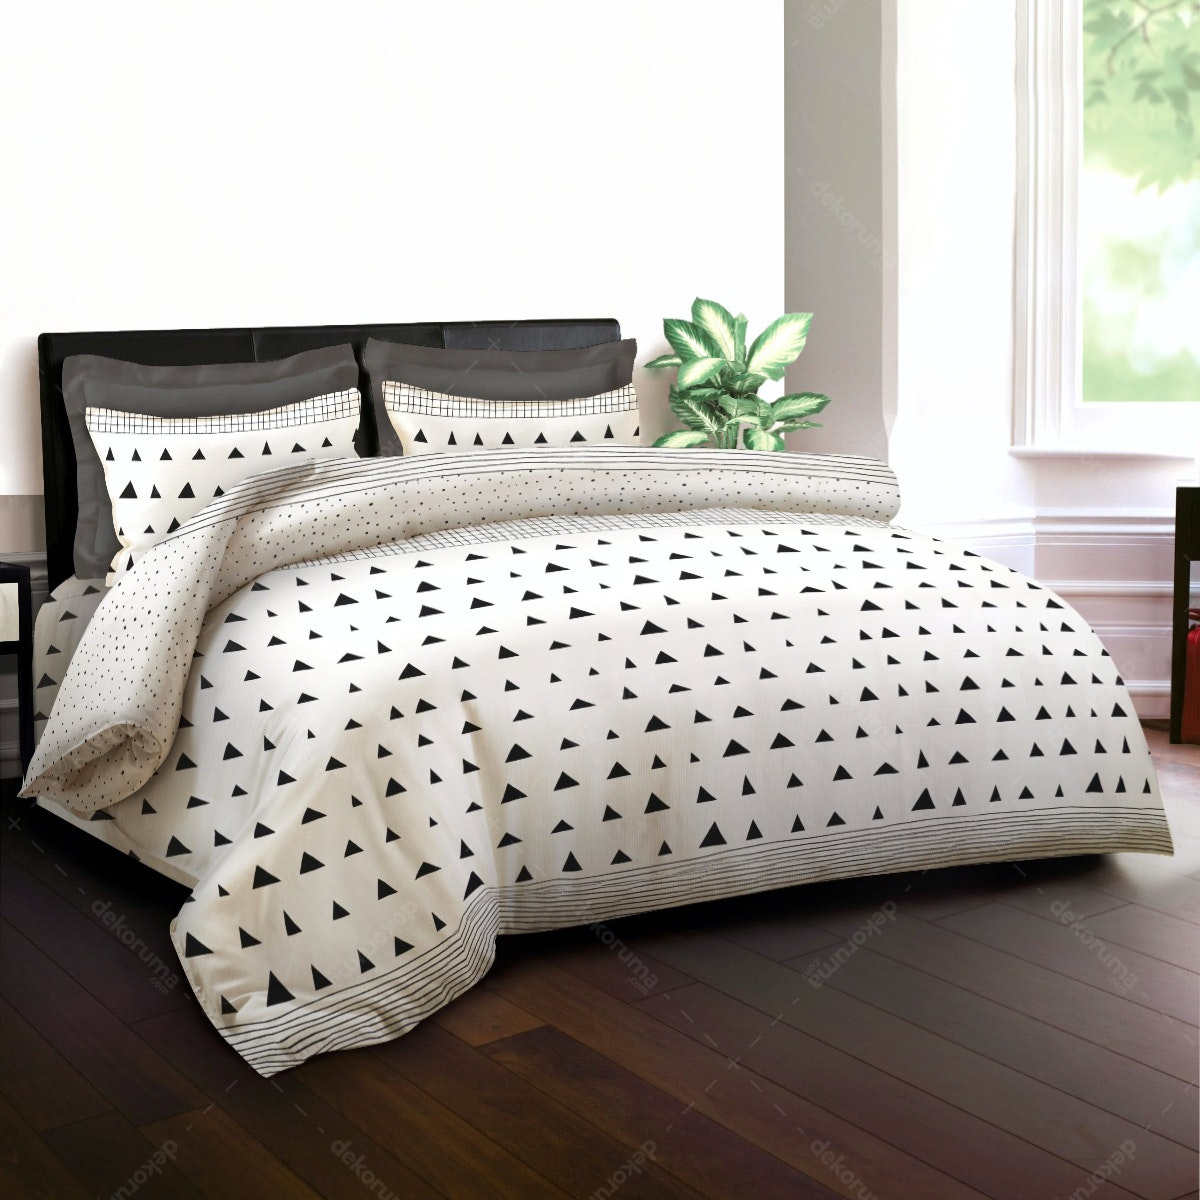 King Rabbit Bed Cover Monolog 230x230cm